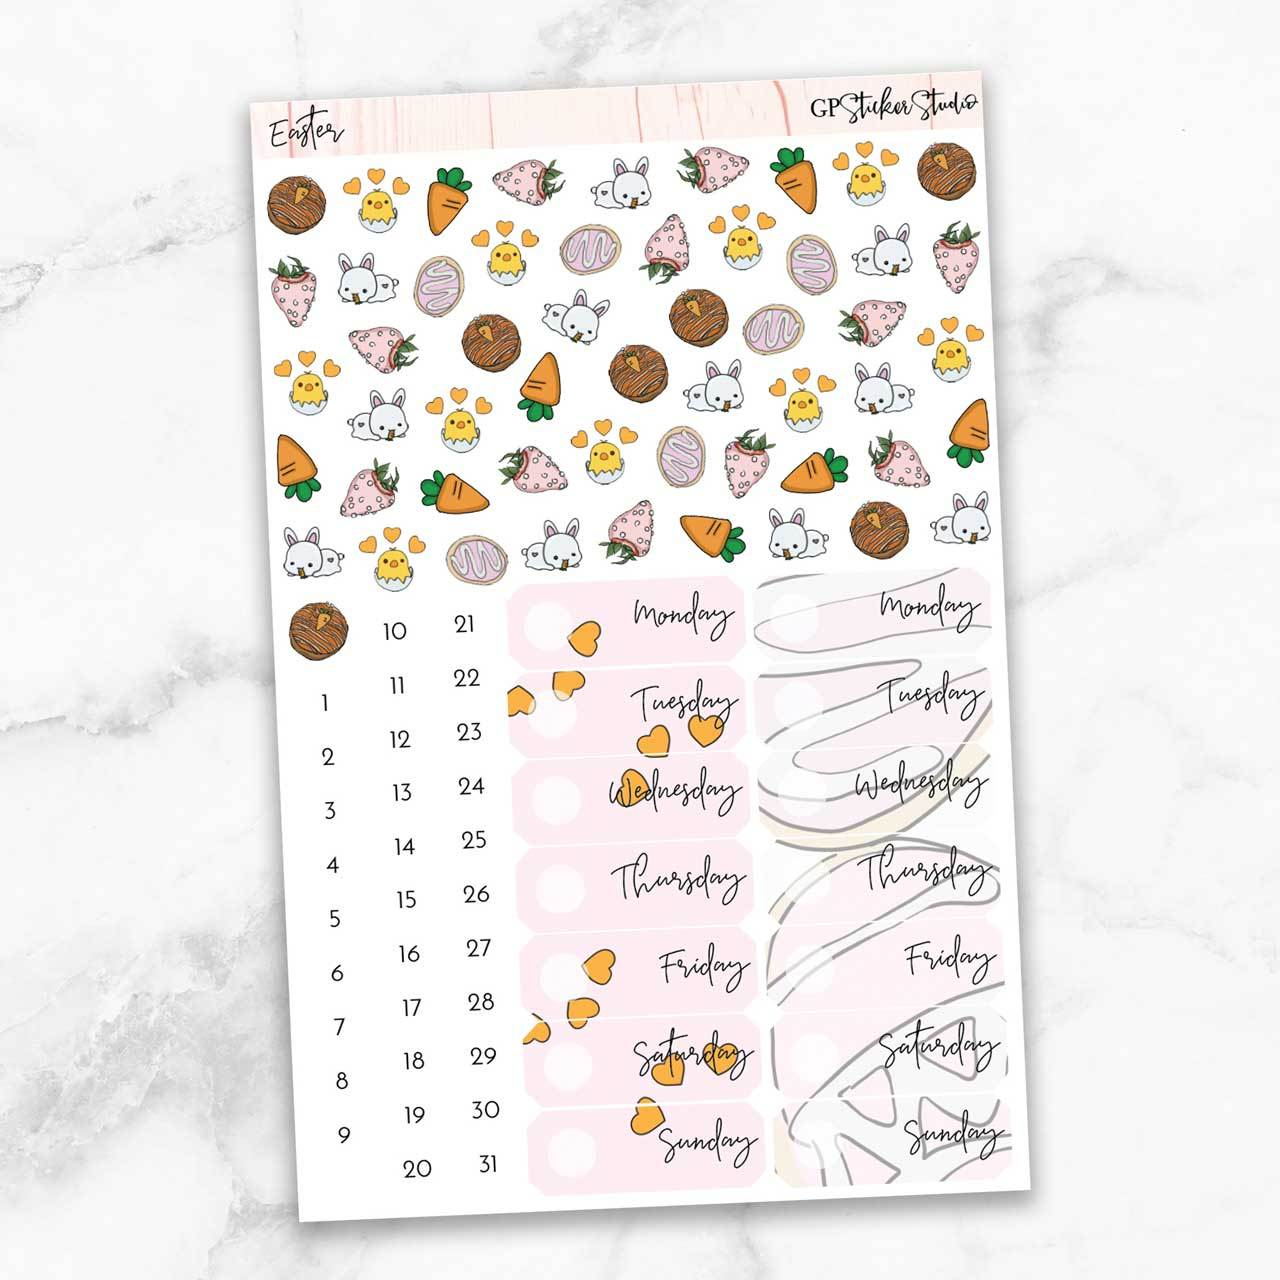 EASTER Deco & Date Cover Stickers-The GP Studio